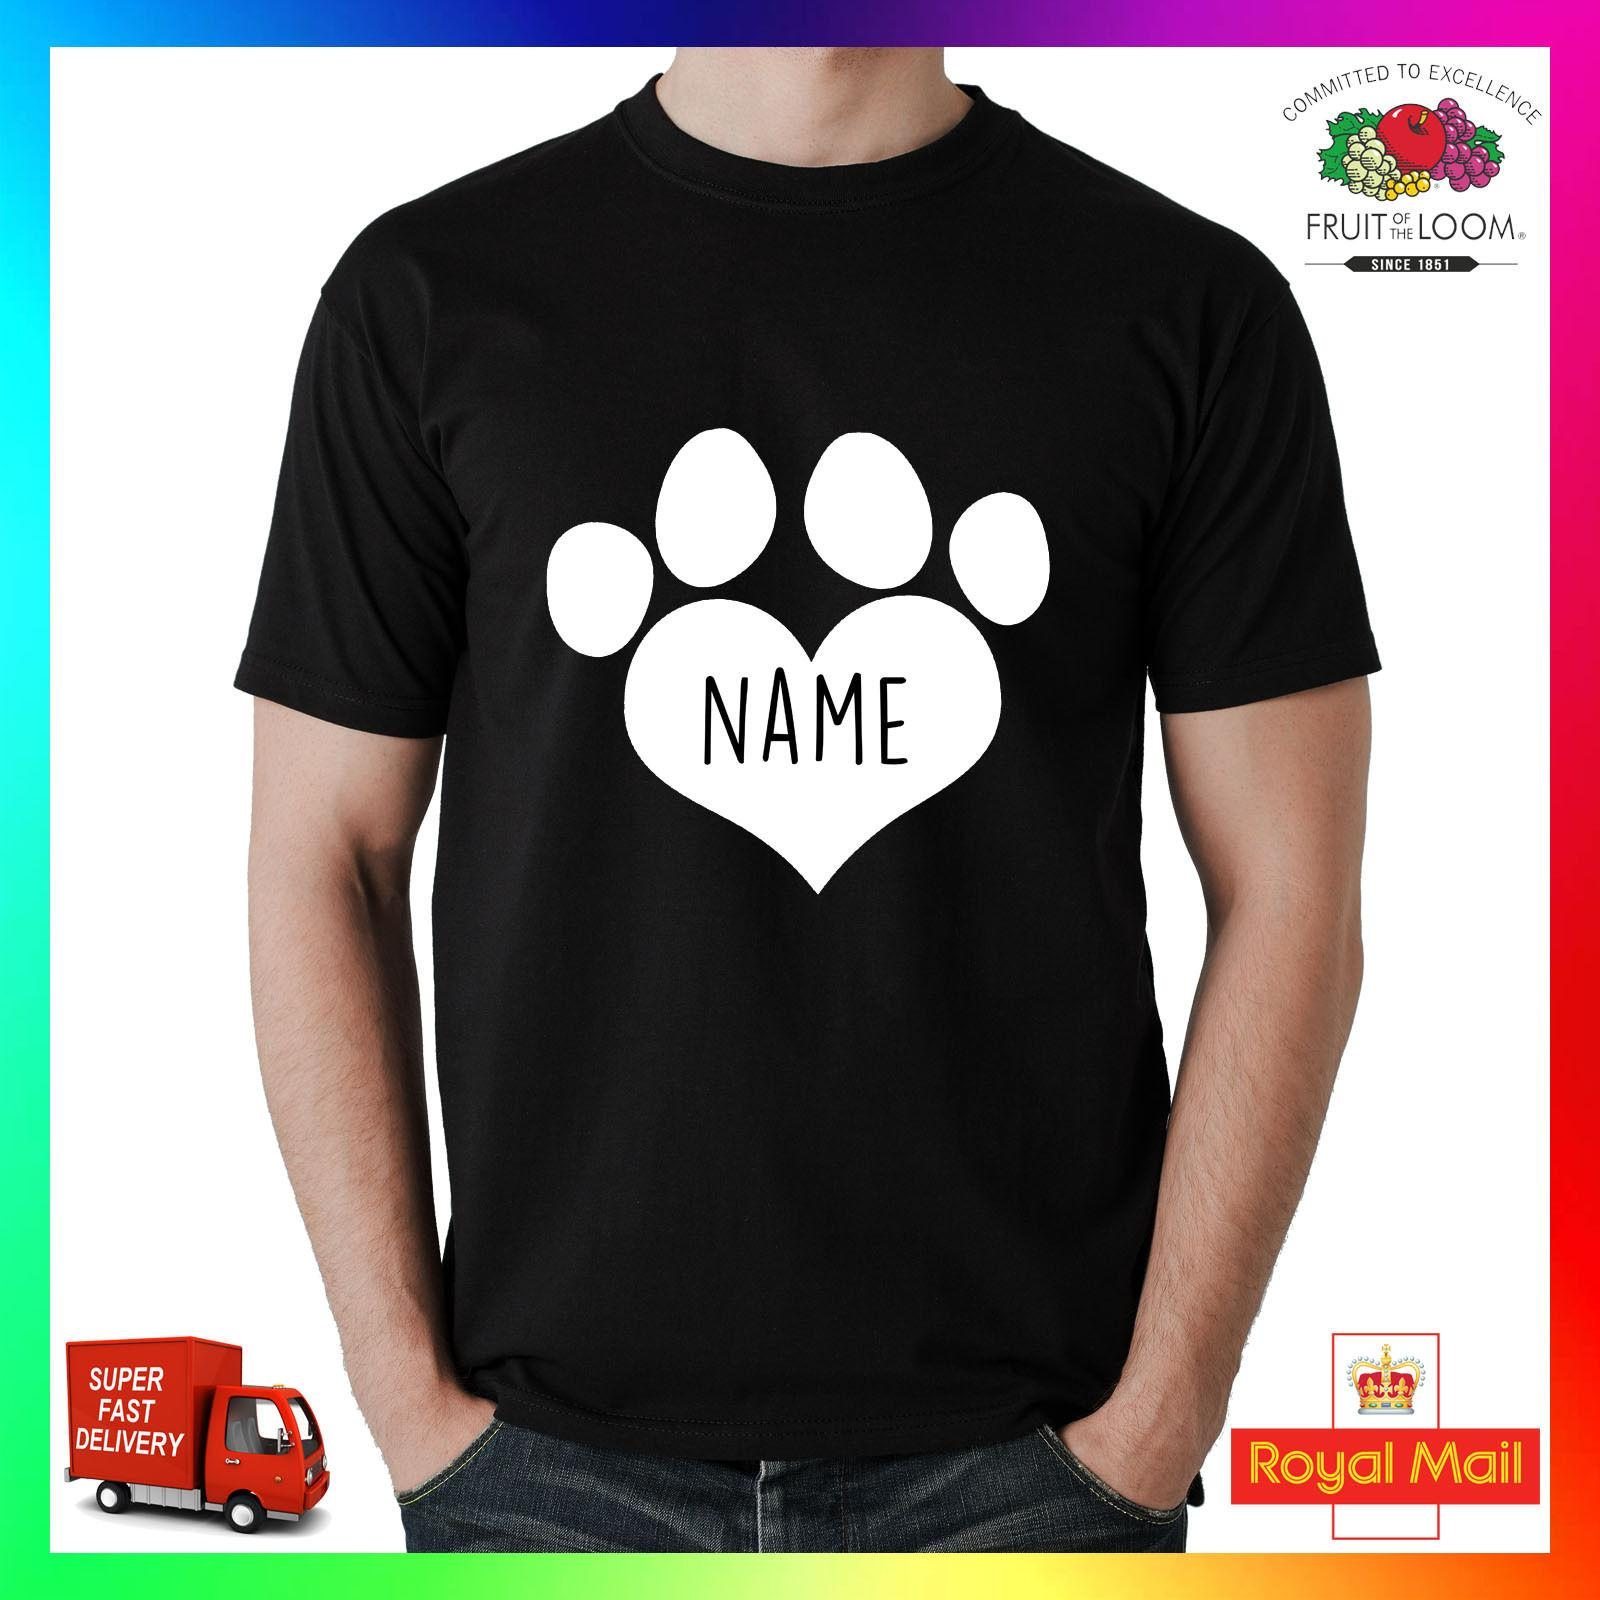 2dbd9733 Custom Dog Name T Shirt Shirt Printed Tee I Love Heart Paw Pet Pup Your Own  Dogs Funny Unisex Casual Tshirt T Shirts Print Tees Online From  Sillyboytshirts, ...